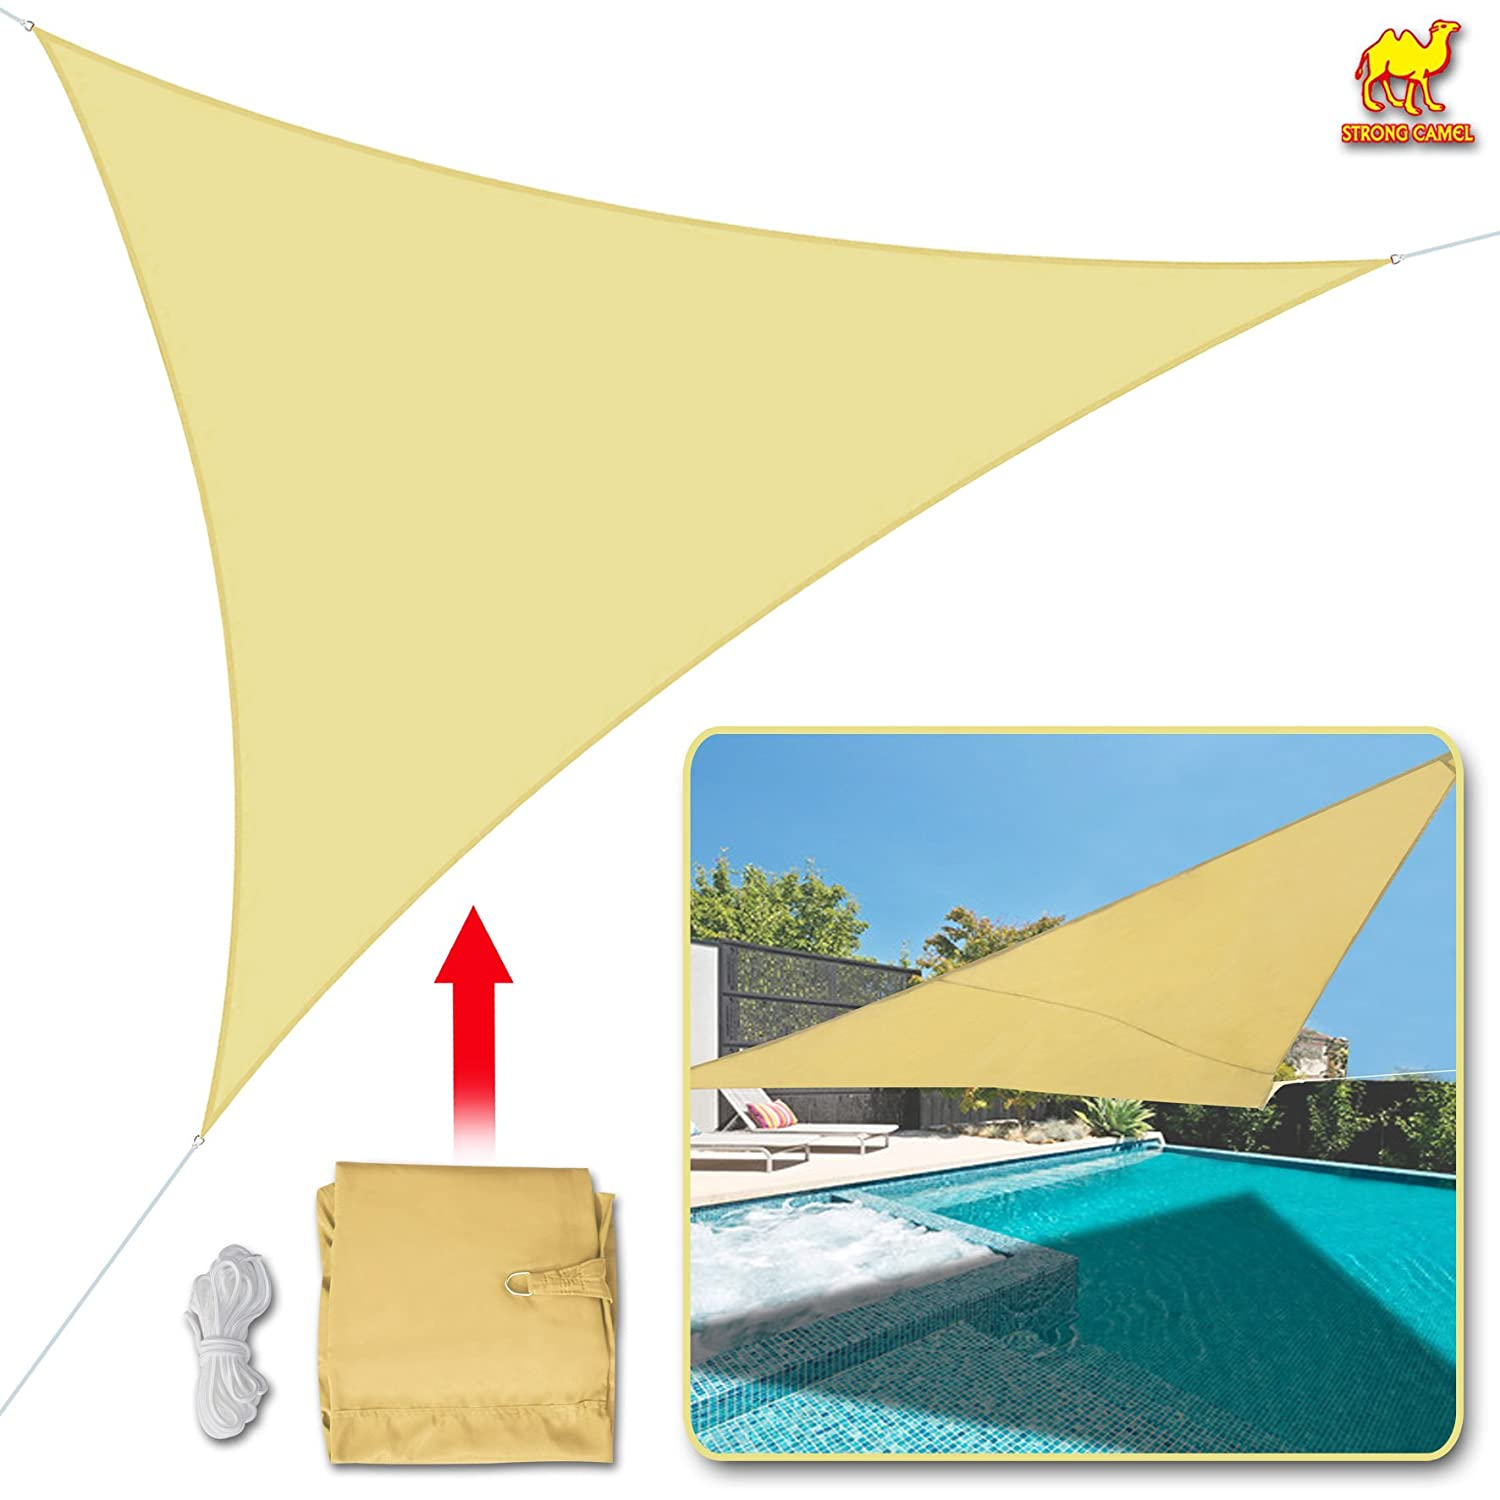 Strong Camel Sun Shade Sail UV Top Cover Canopy 12 Triangle for Outdoor Patio Lawn Backyard Beige